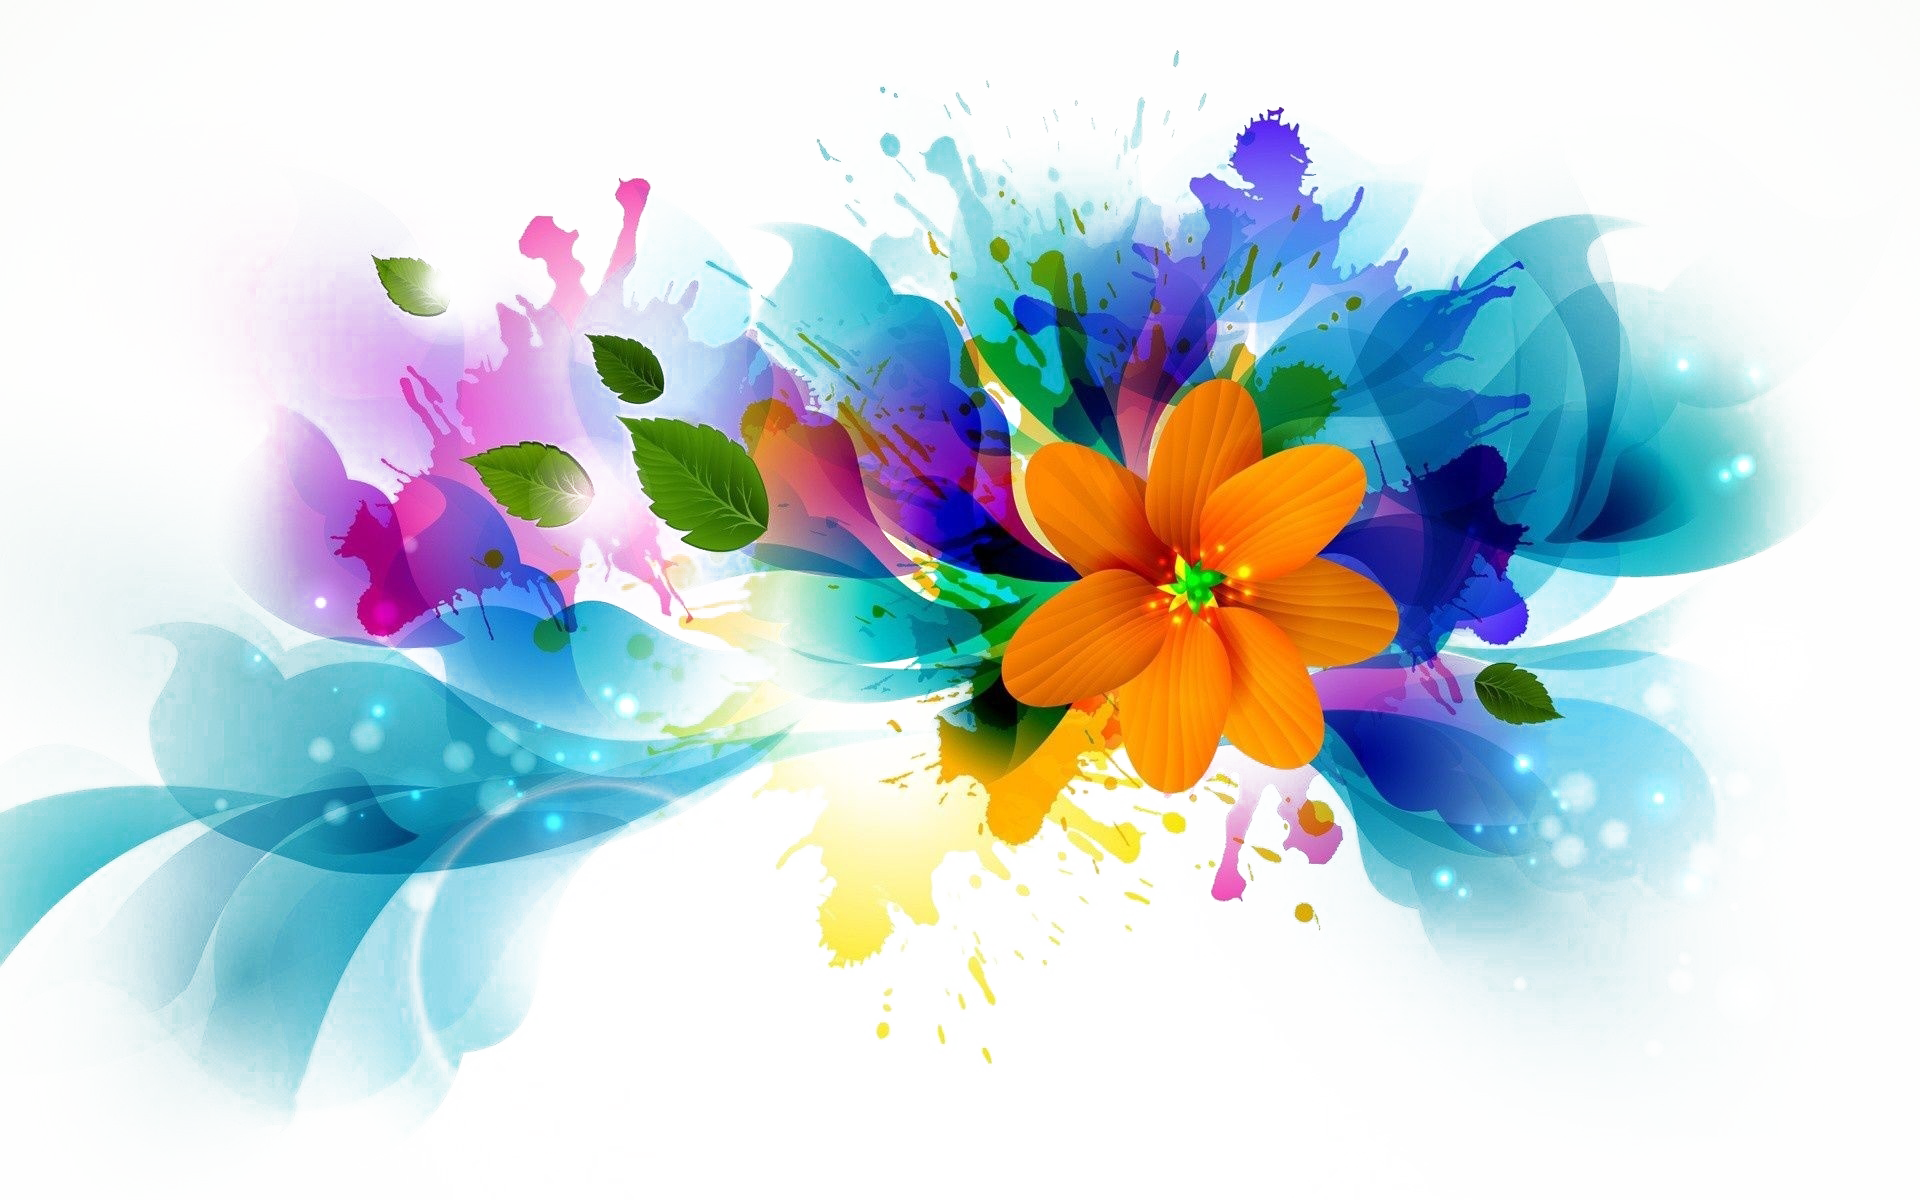 Abstract flowers png. Flower background image arts